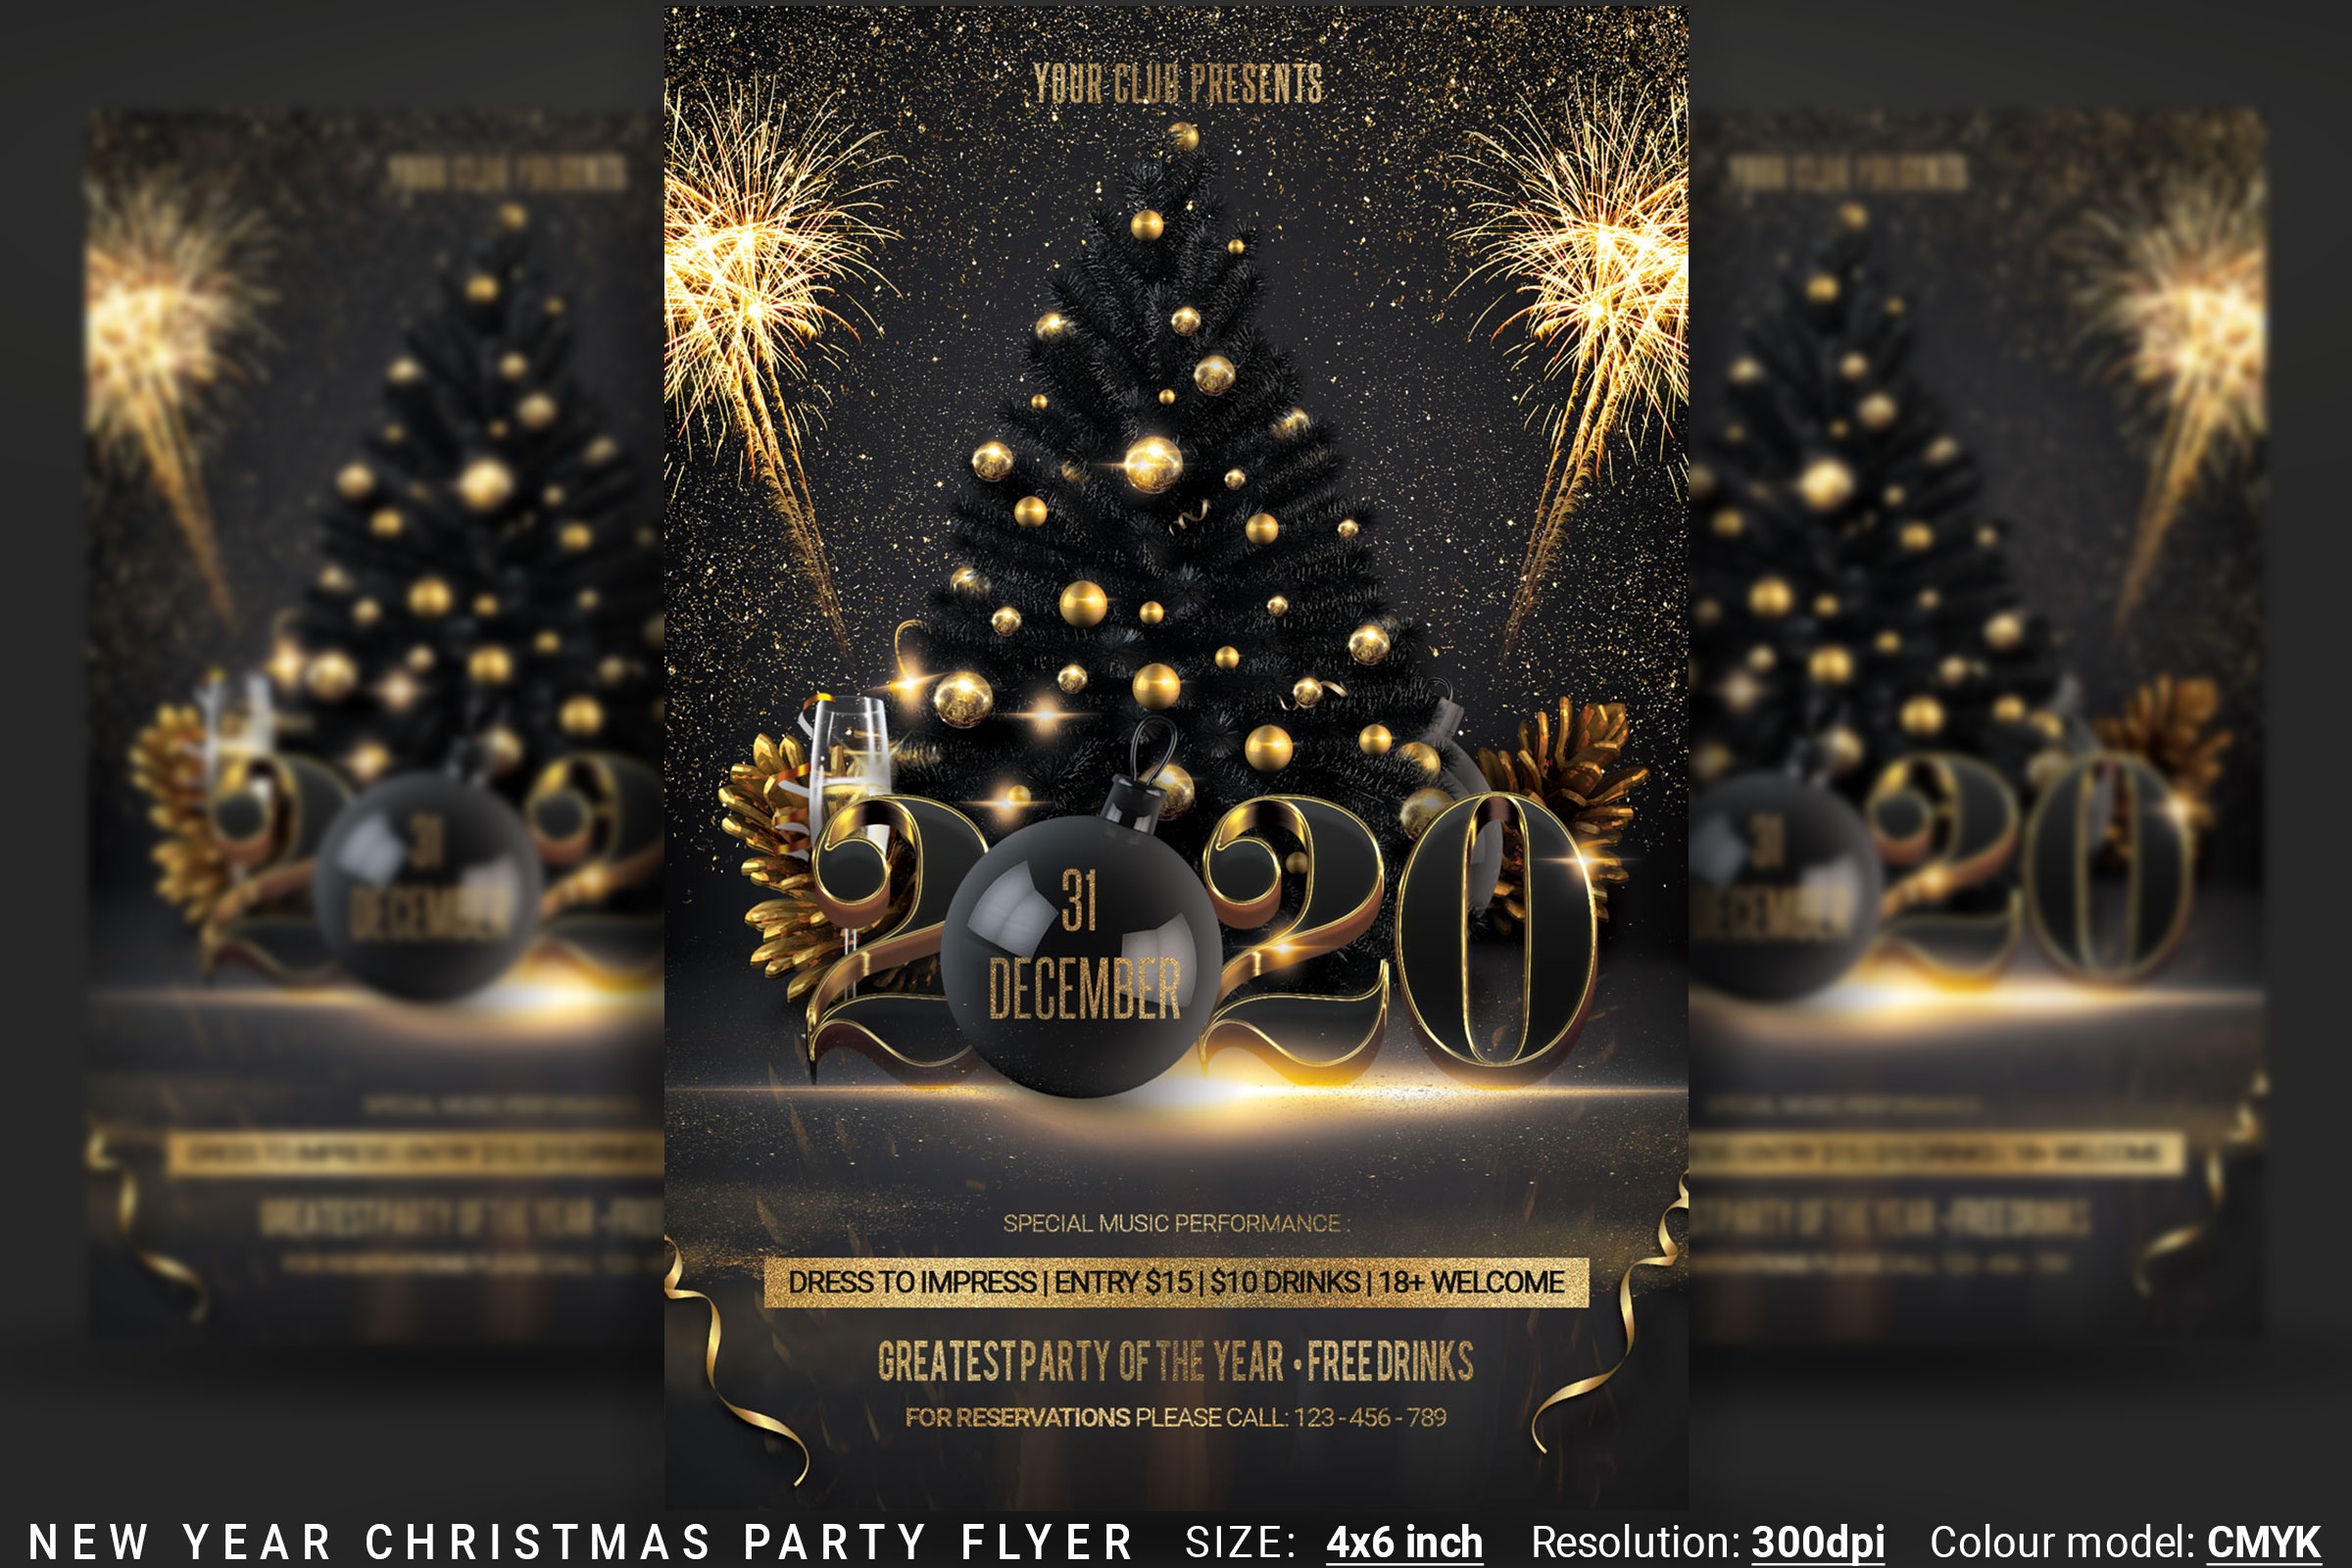 Christmas Party Flyer.New Year Christmas Party Flyer